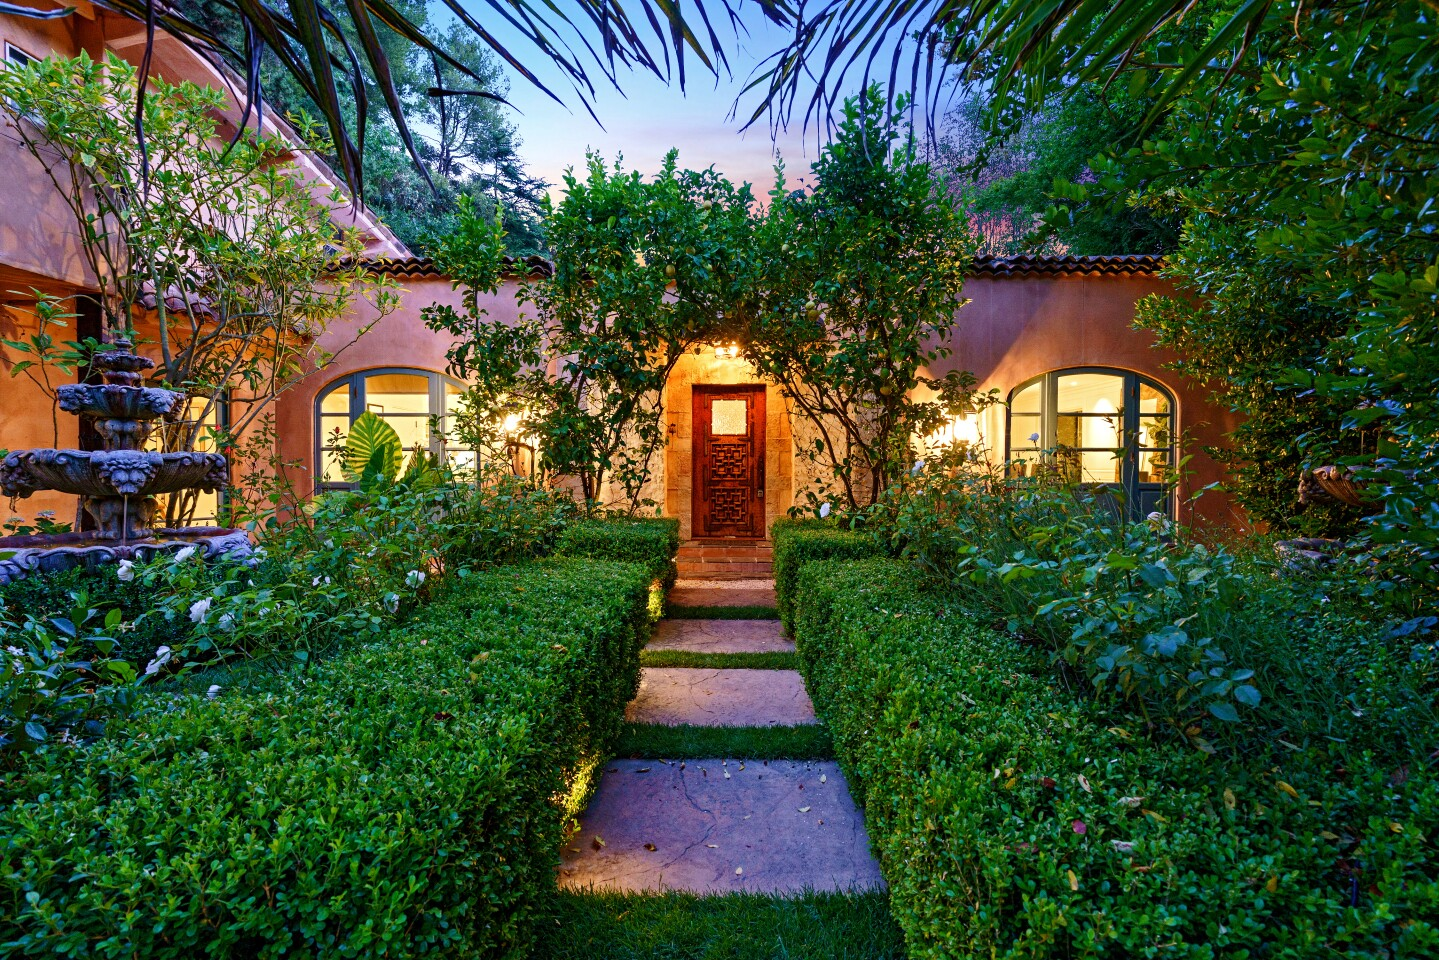 The actor and his wife, model-designer Neha Kapur, are asking $3.995 million for their compound, which spans half an acre in Hollywood Hills. The Mediterranean villa-style main house and two guesthouses are on the leafy property. Courtyards, patios and a swimming pool with a separate pool house fill out the grounds.